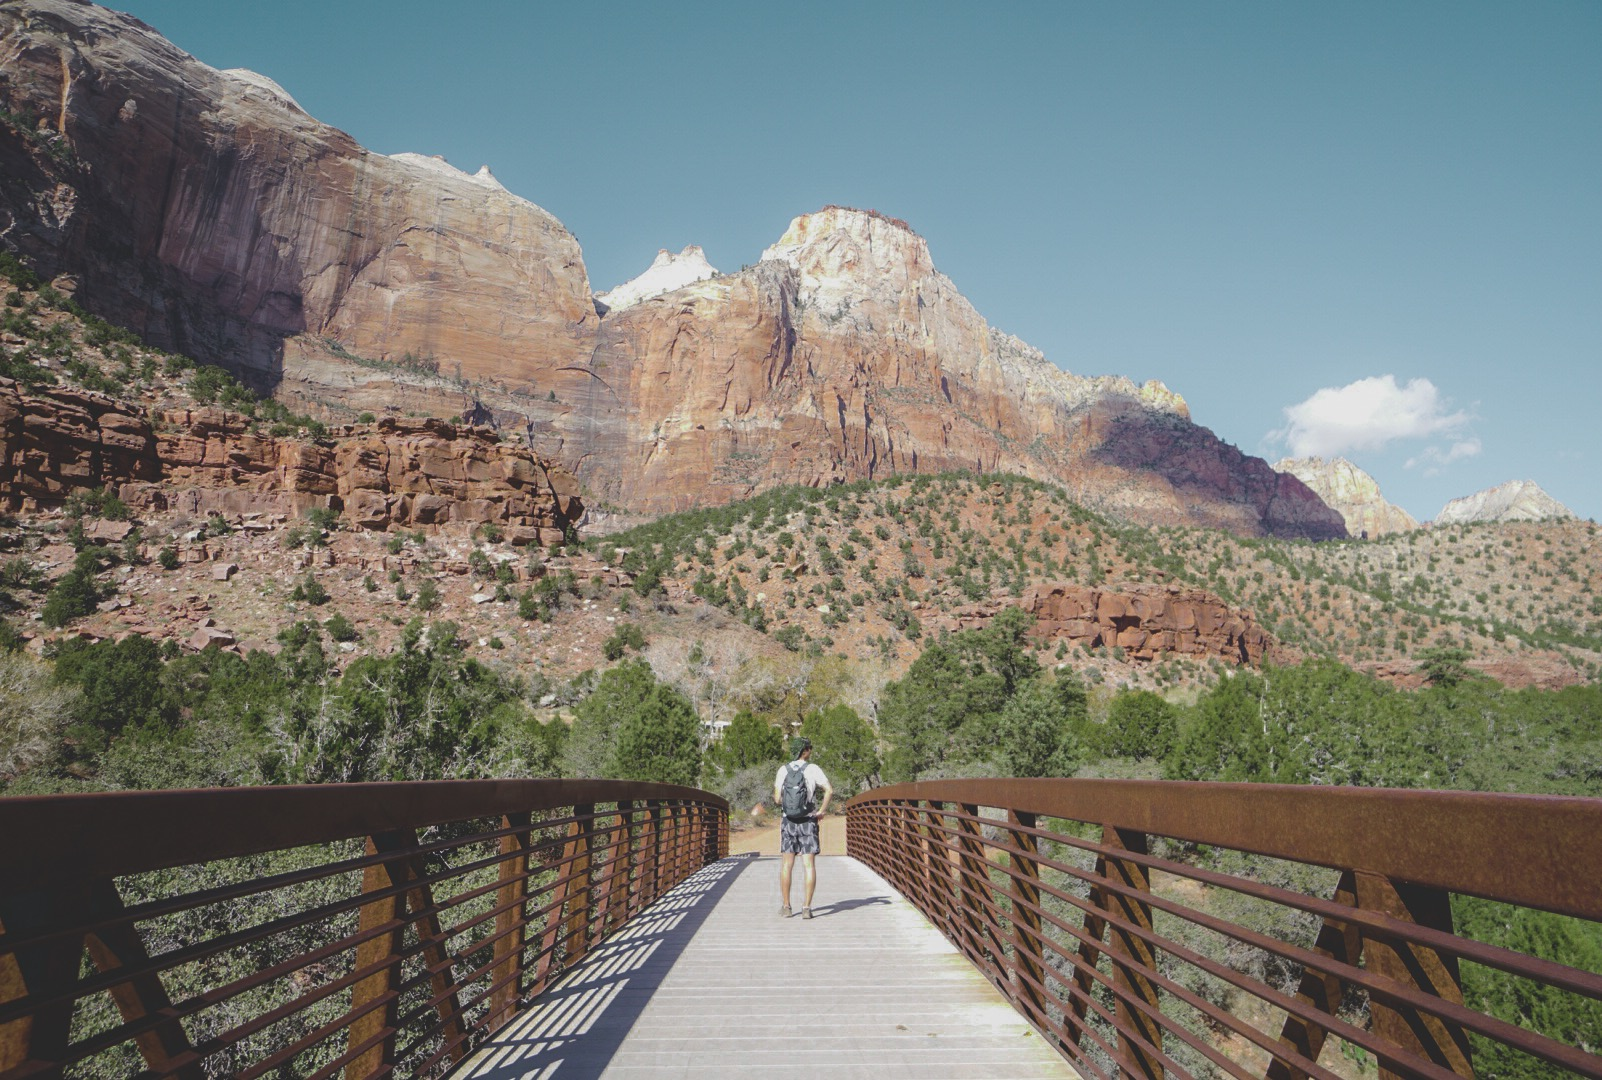 HIKING ZION NATIONAL PARK | The trails, wildlife, food and